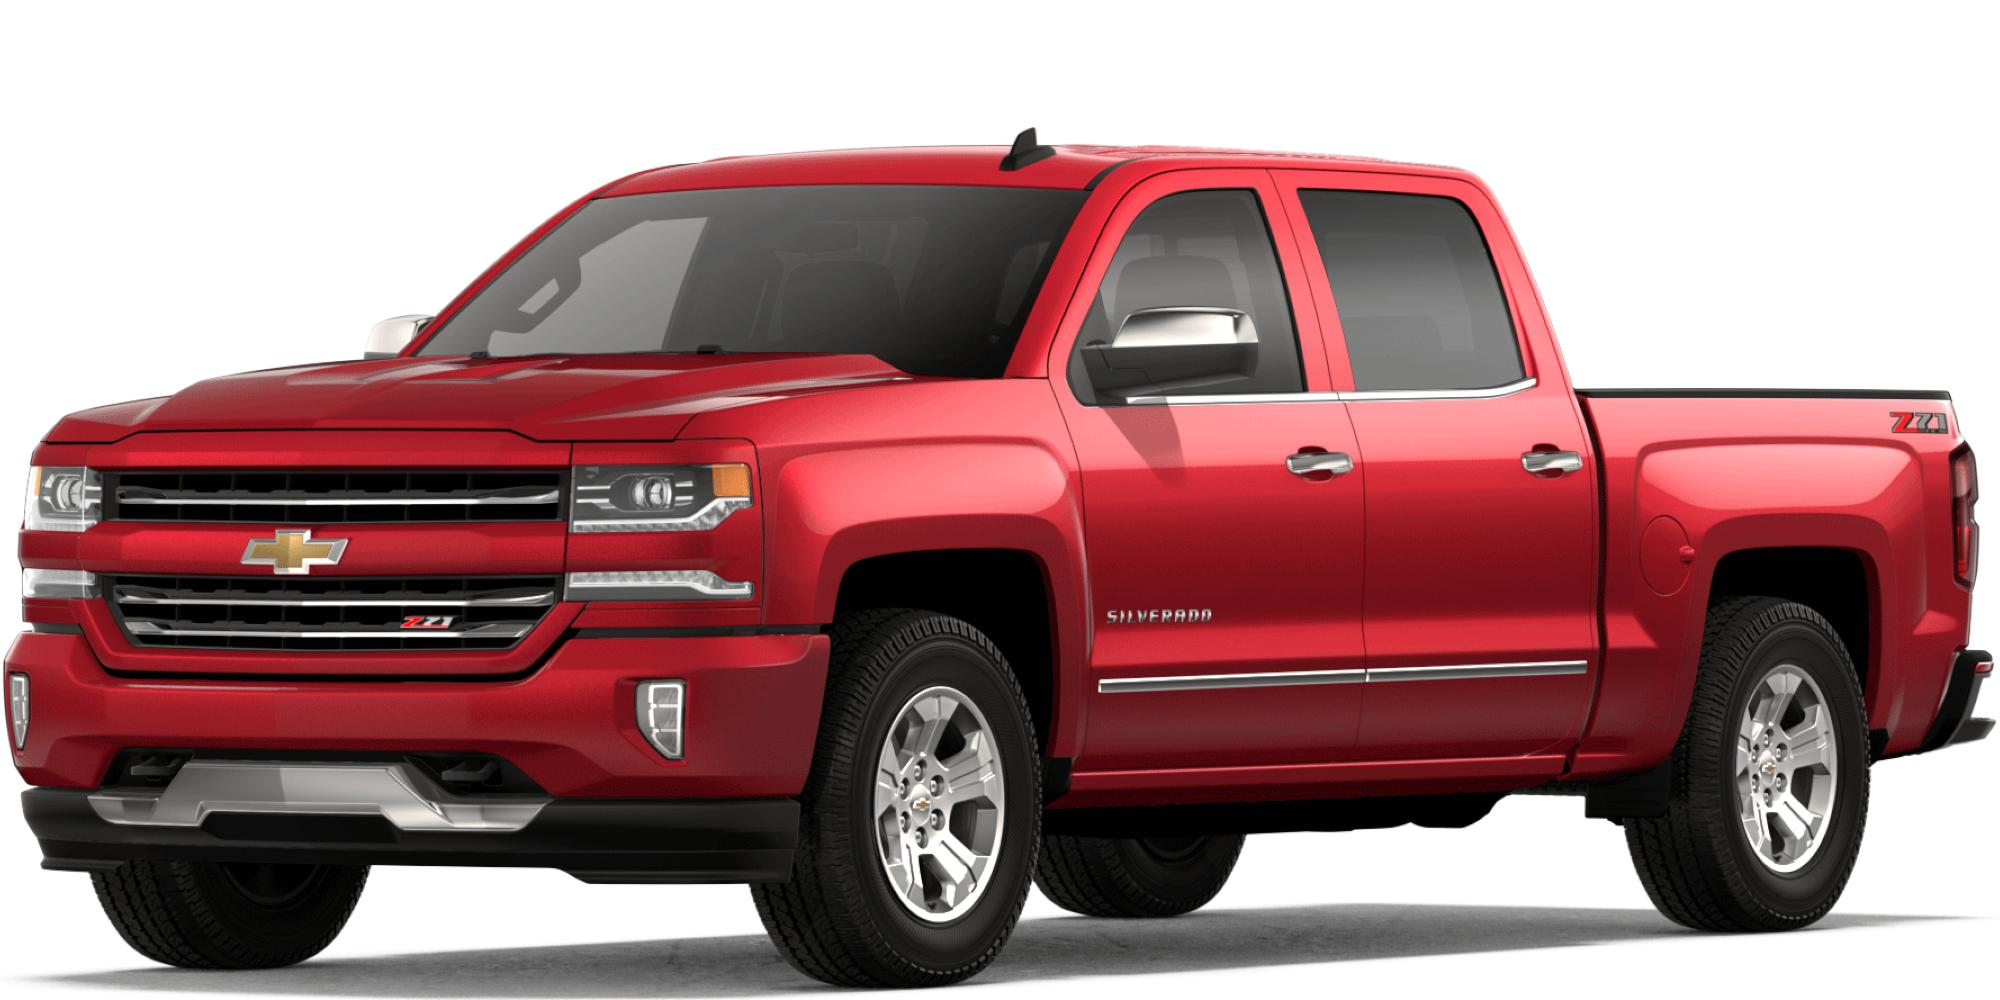 2018 Chevrolet Silverado 1500 for sale near Sacramento